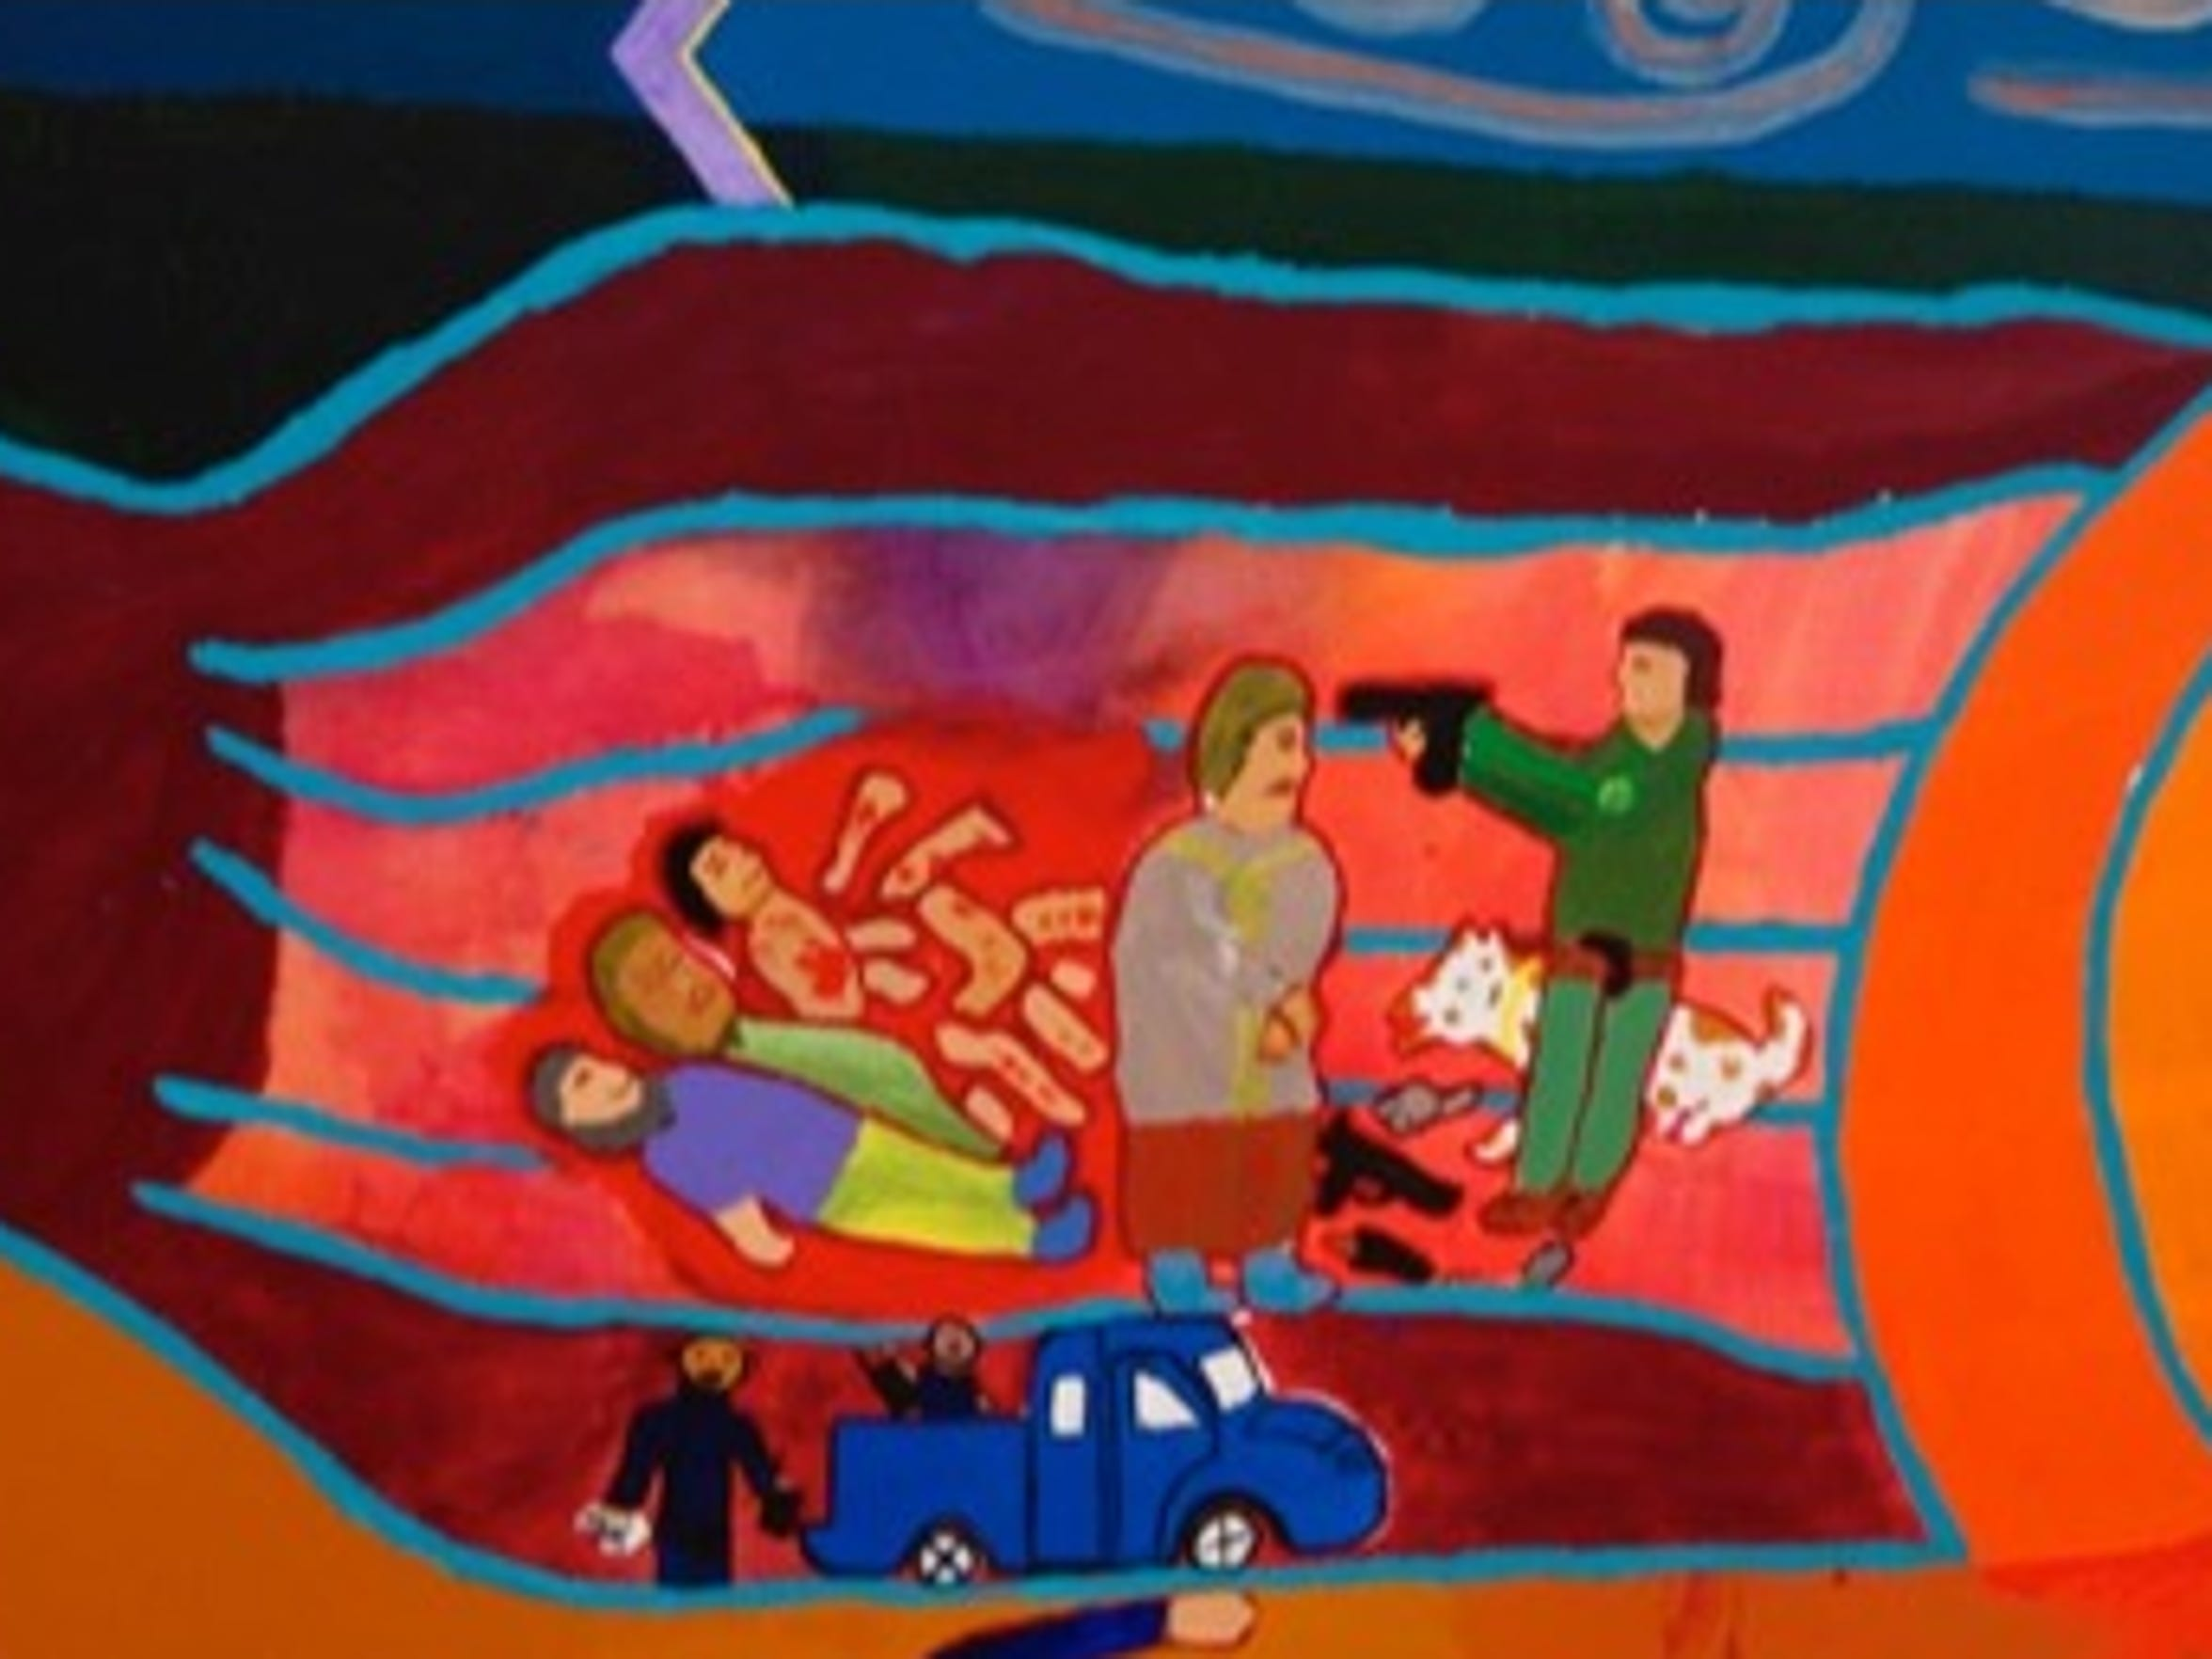 One boy watched cartel members kill and dismember its victims. He fled to the United States and was transported to a secure facility in Augusta County to await his day in court seeking asylum. HIs depiction of his experiences is part of the Second Chances mural.